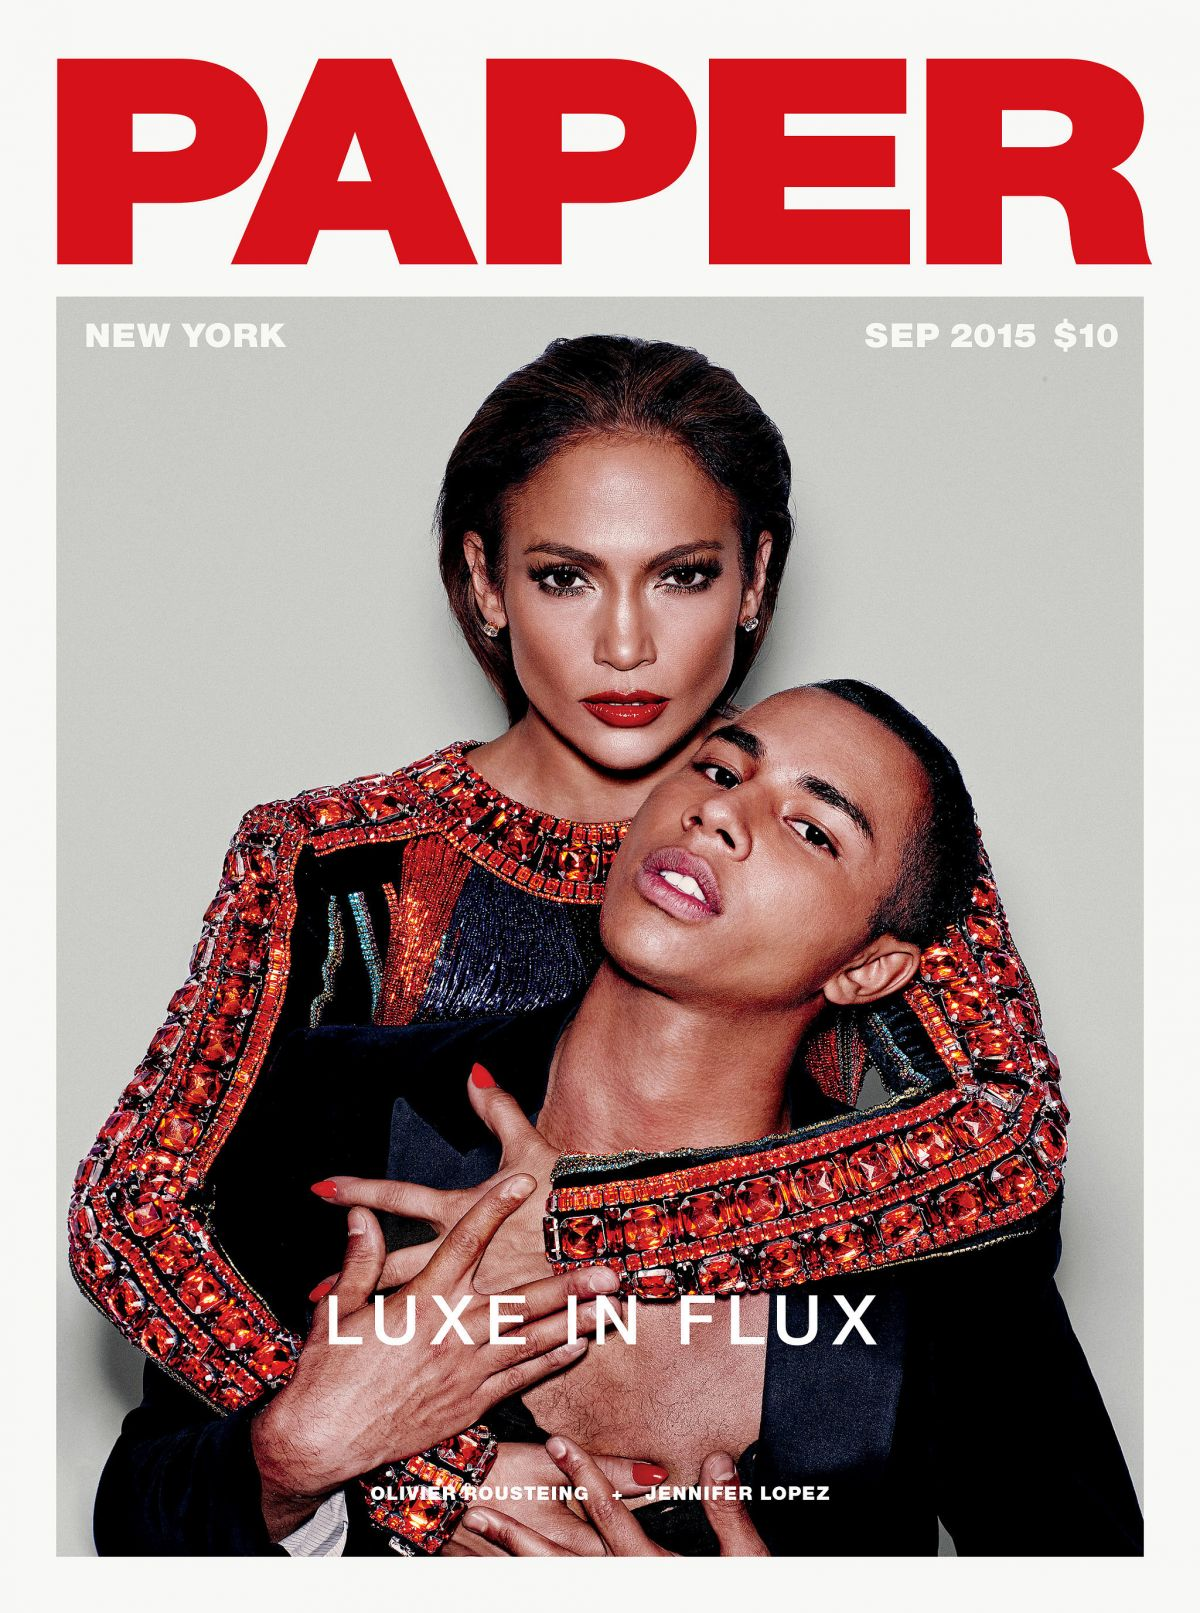 JENNIFER LOPEZ on the Cover of Paper Magazine, September 2015 Issue